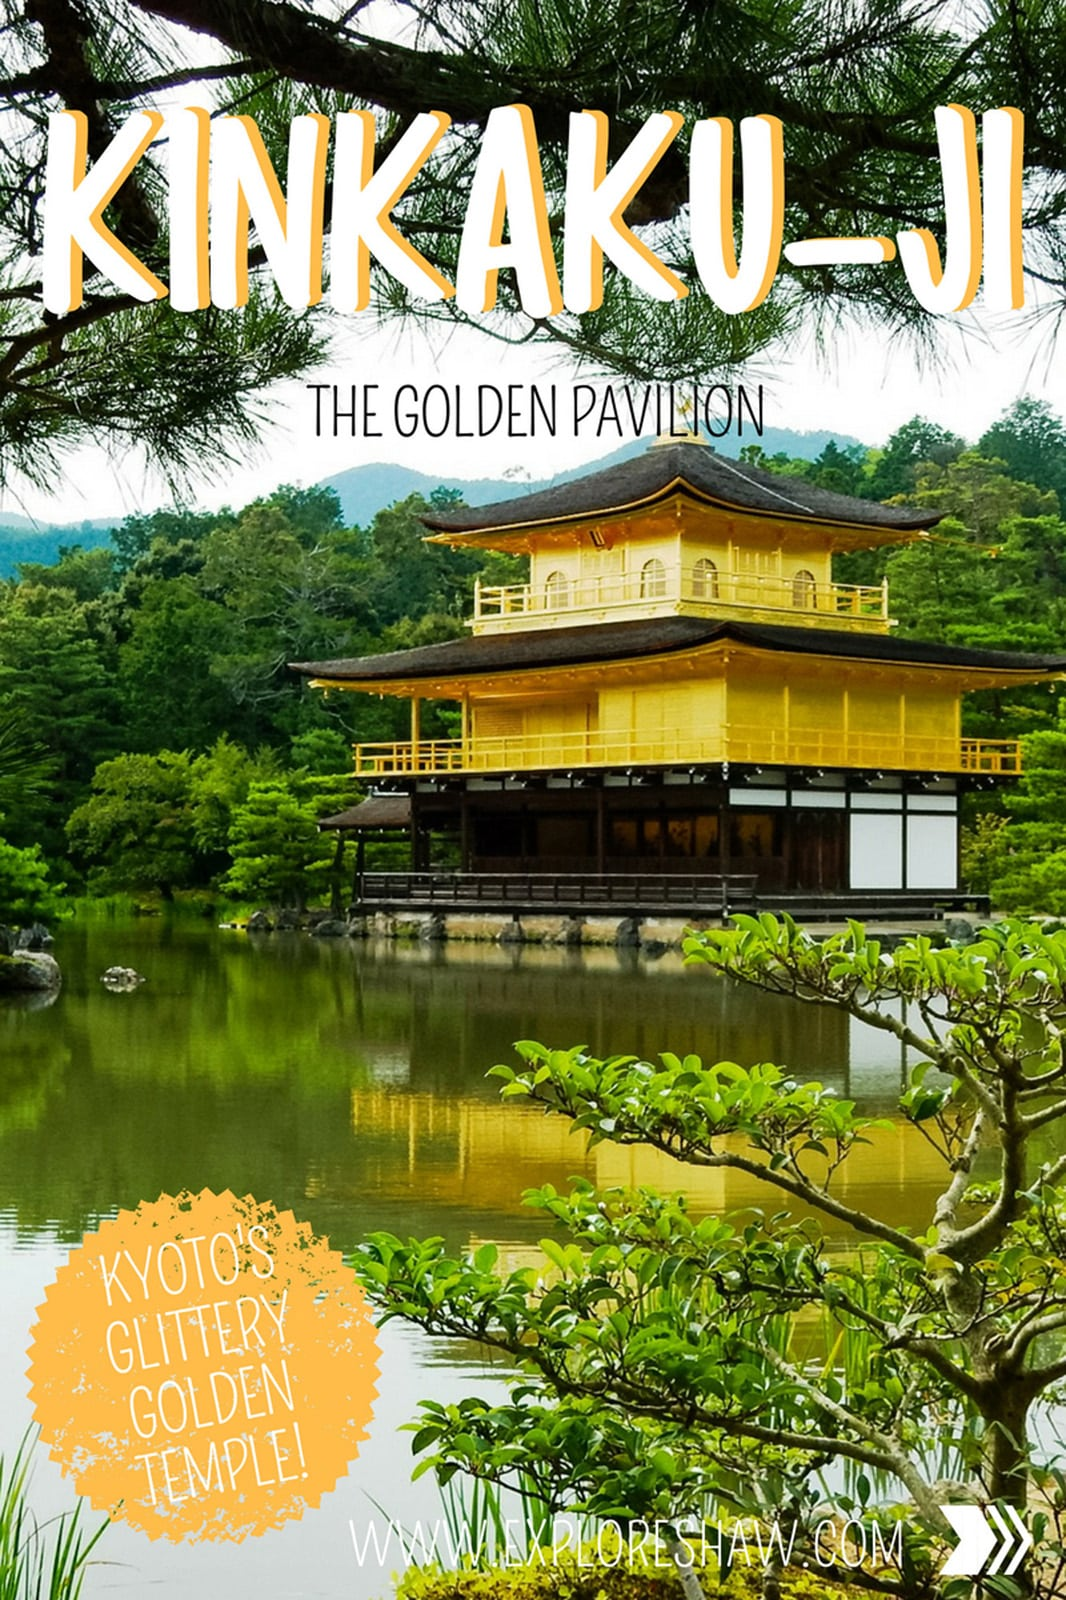 Kinkaku-ji金閣寺 the Golden Pavilion. Kinkaku-ji is a Zen temple in northern Kyoto, whose top two floors are completely covered in gold leaf. #Japan #Kyoto